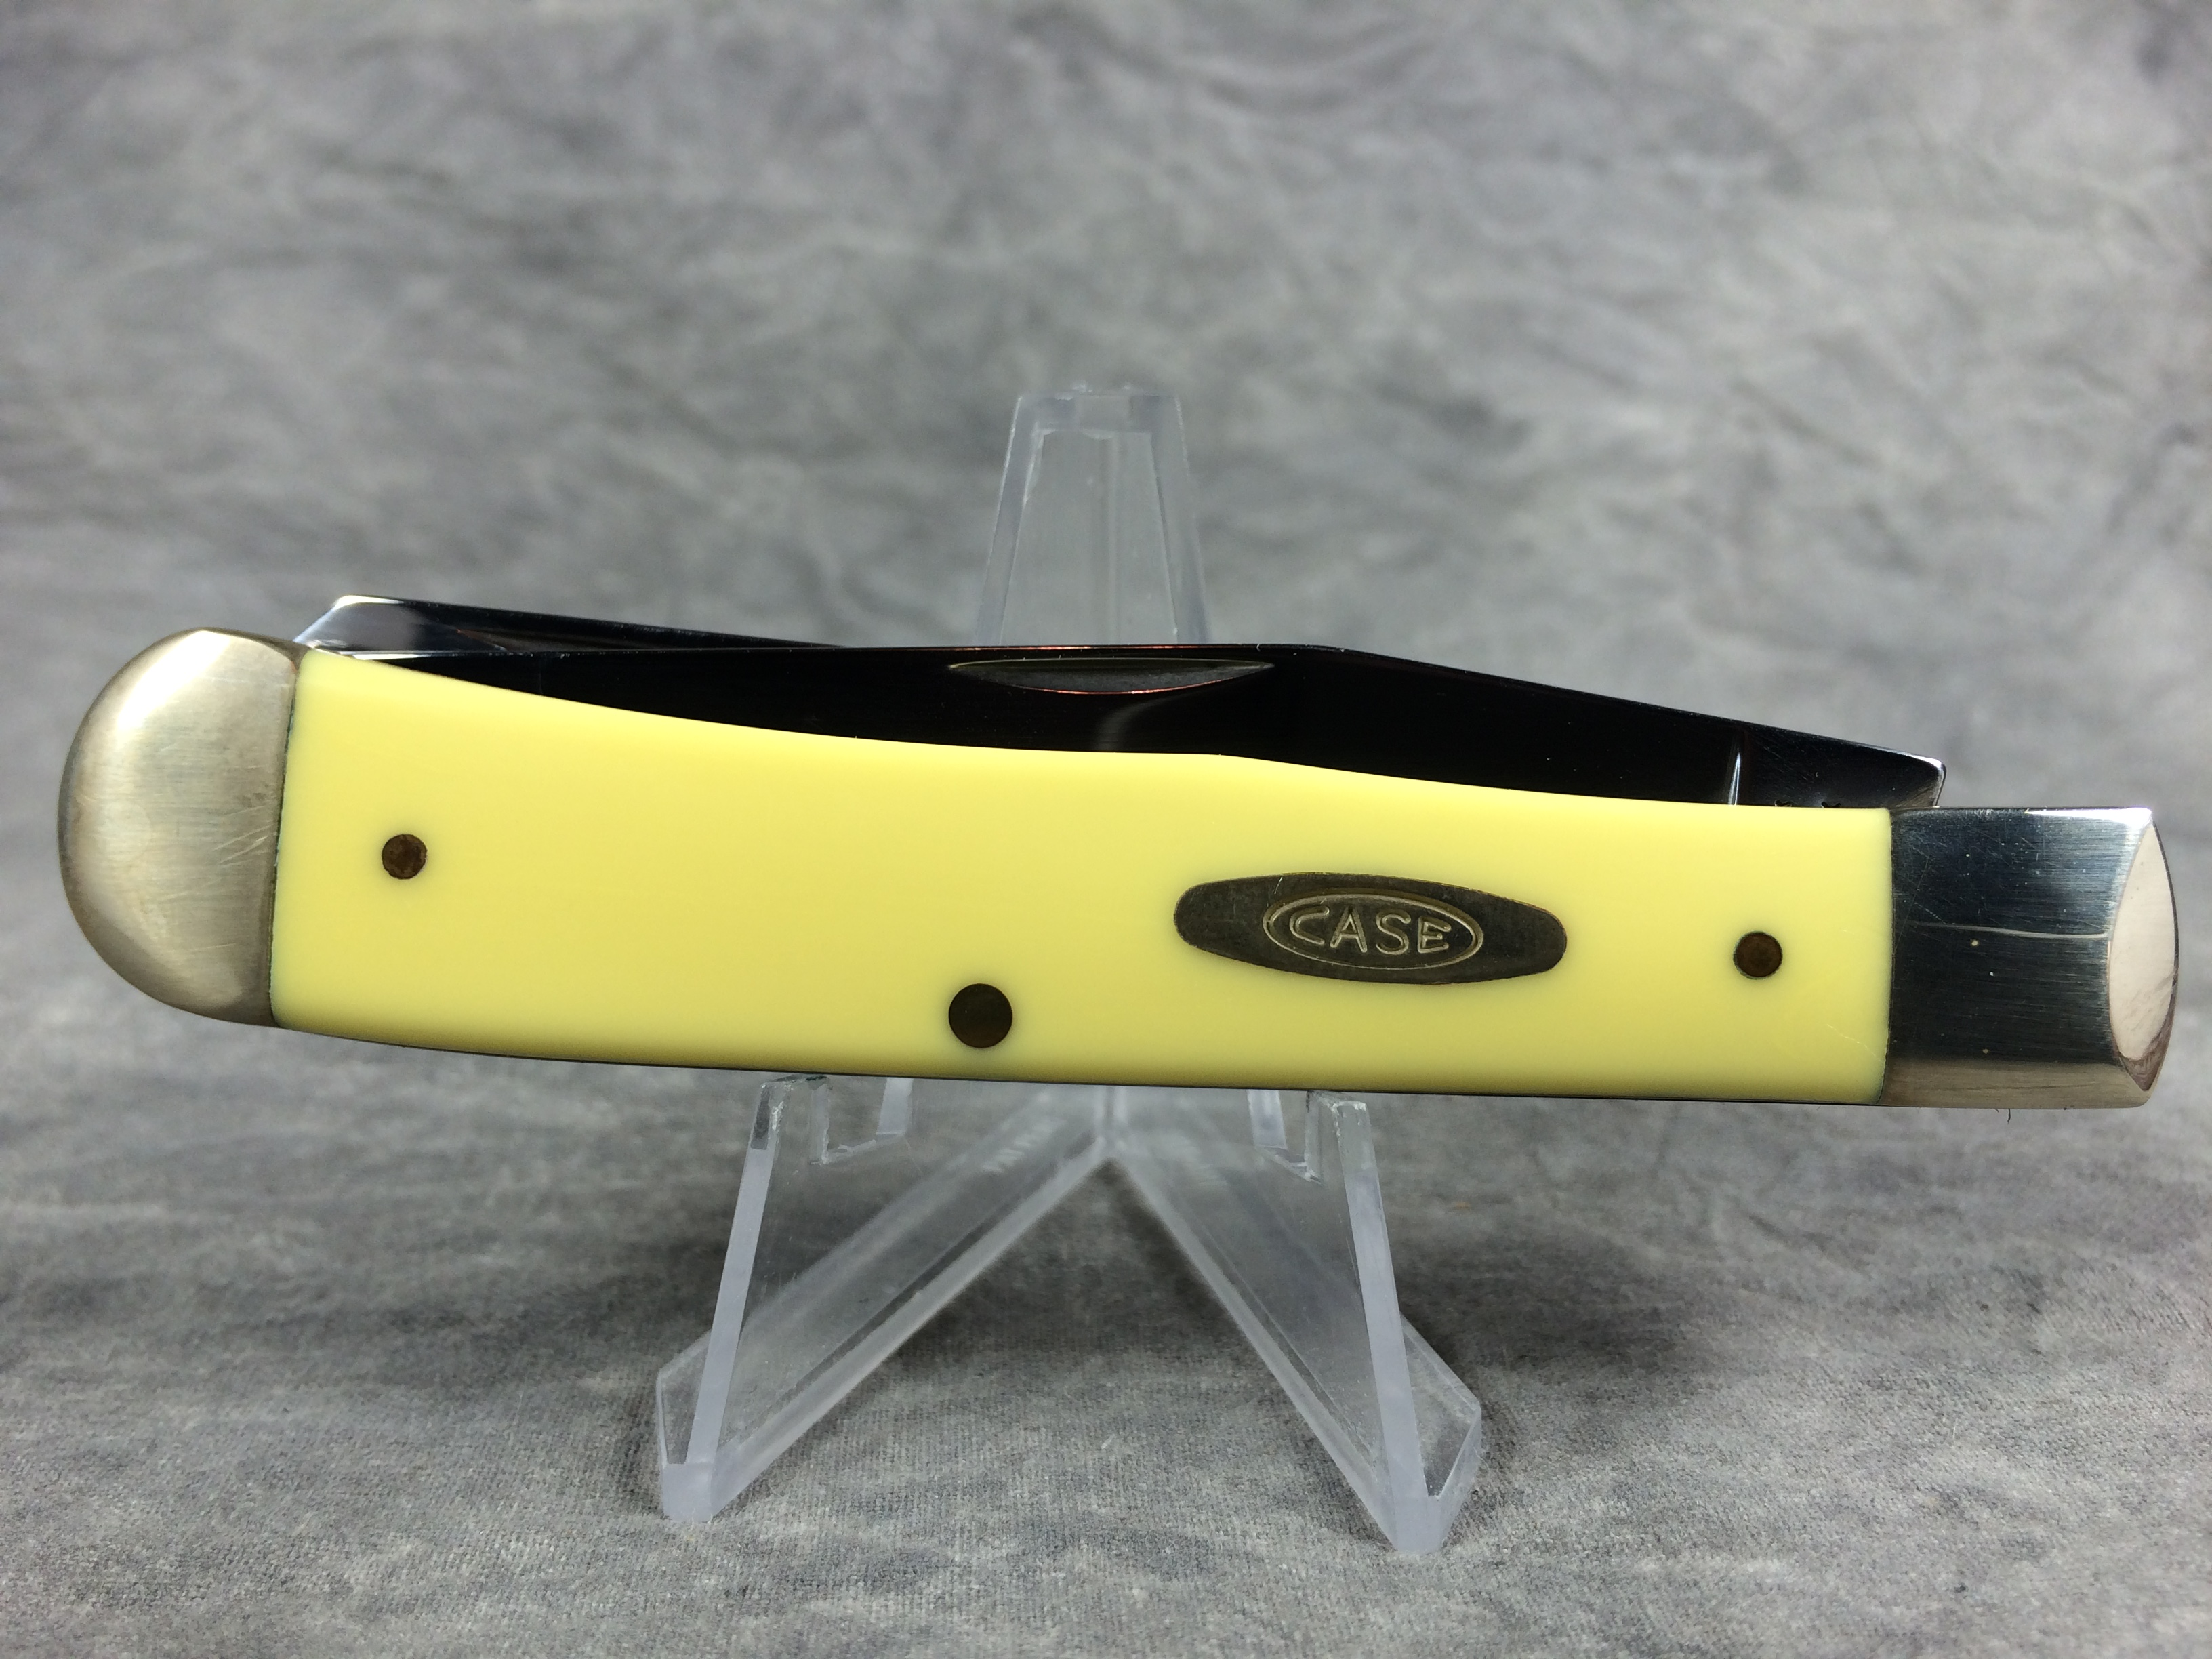 2010 case xx 3254 cv yellow trapper pocket knife nmib